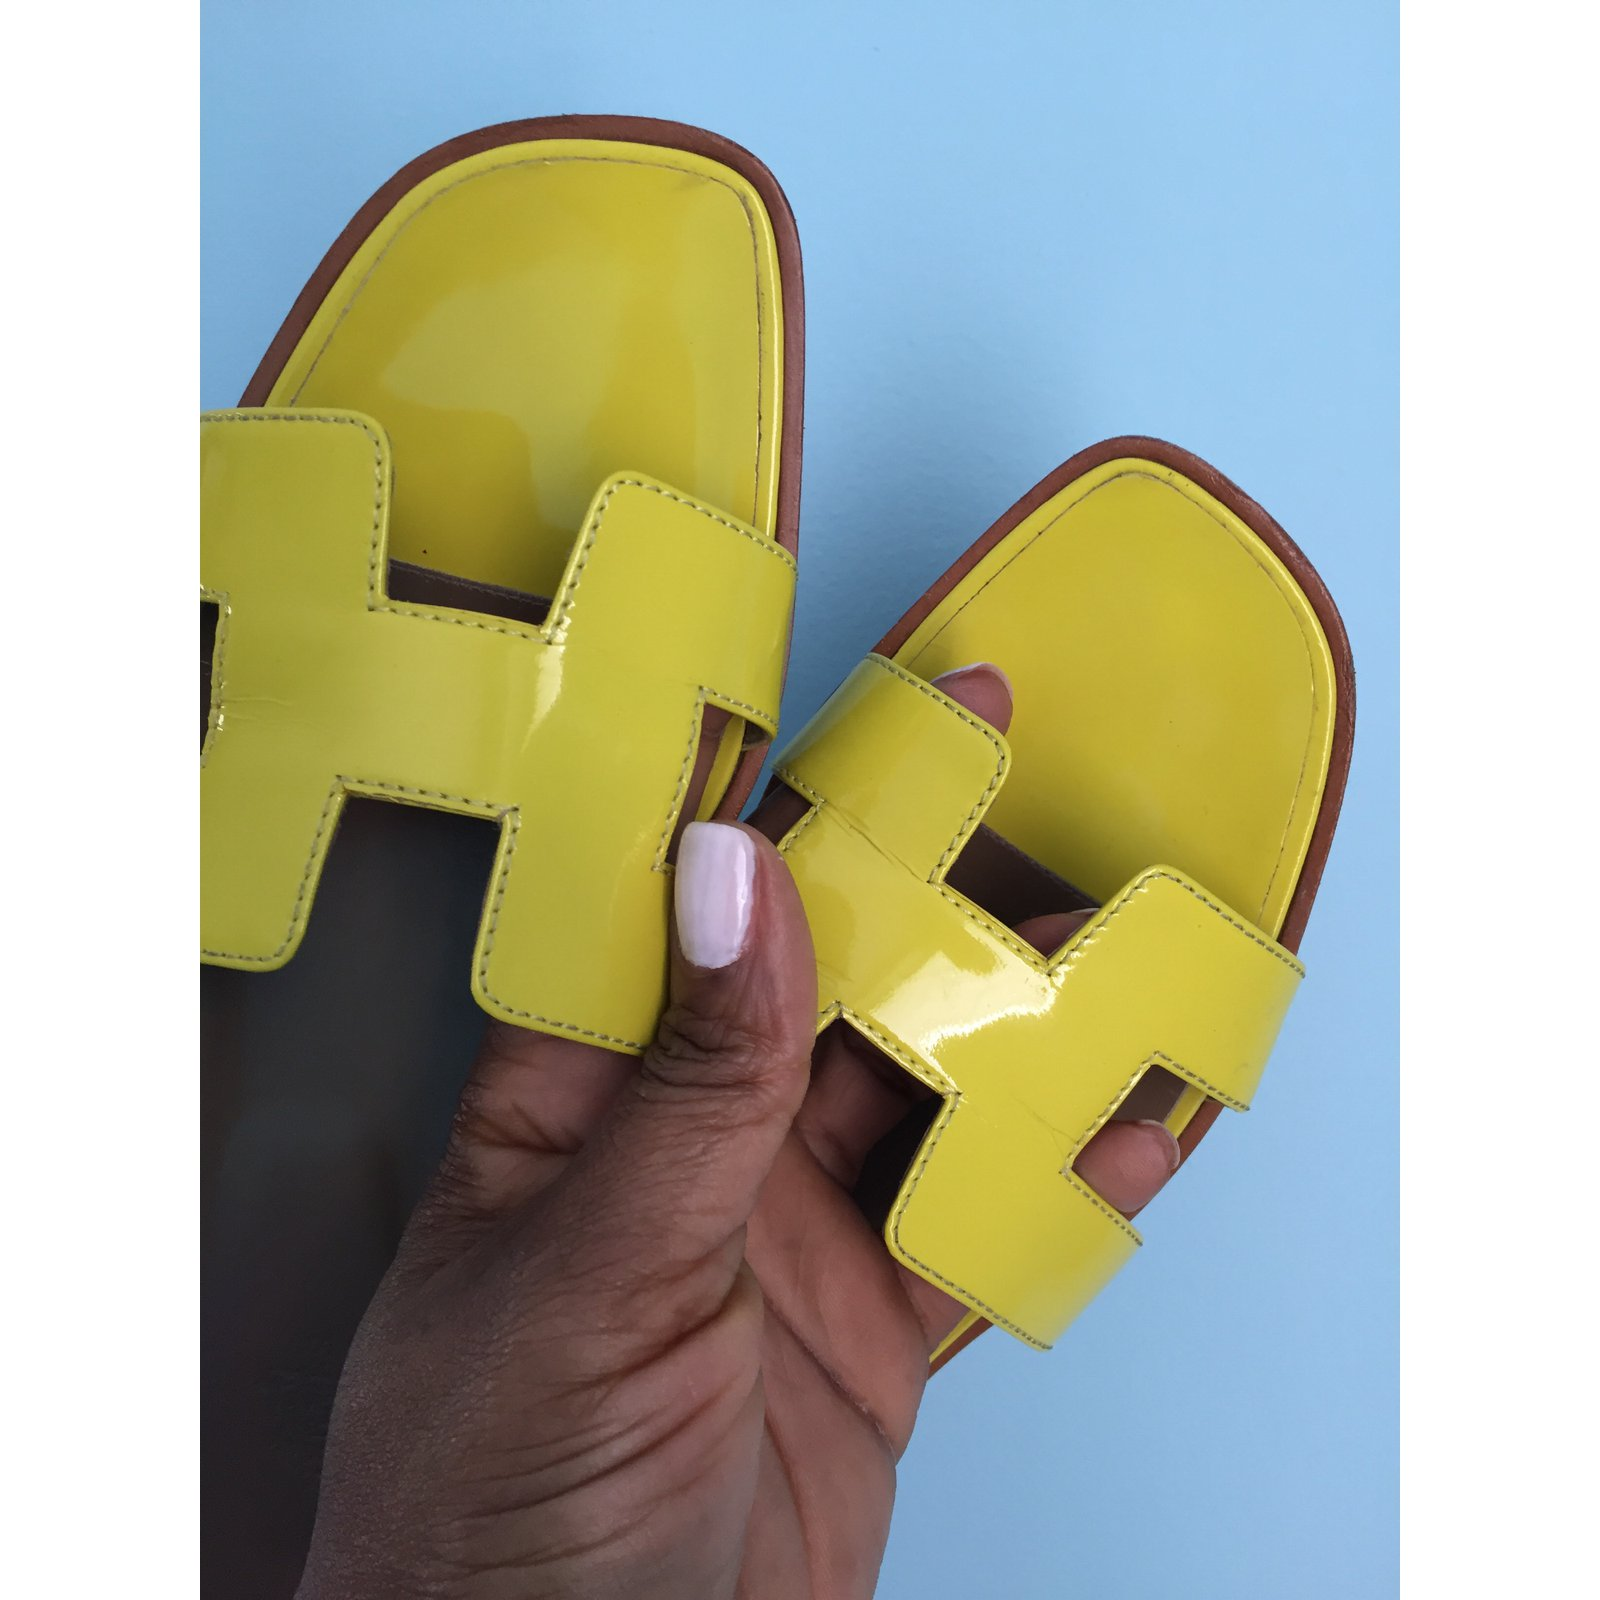 76b2e38ba1fc Facebook · Pin This. Hermès Oran Vernis fluo Sandals Patent leather Yellow  ...